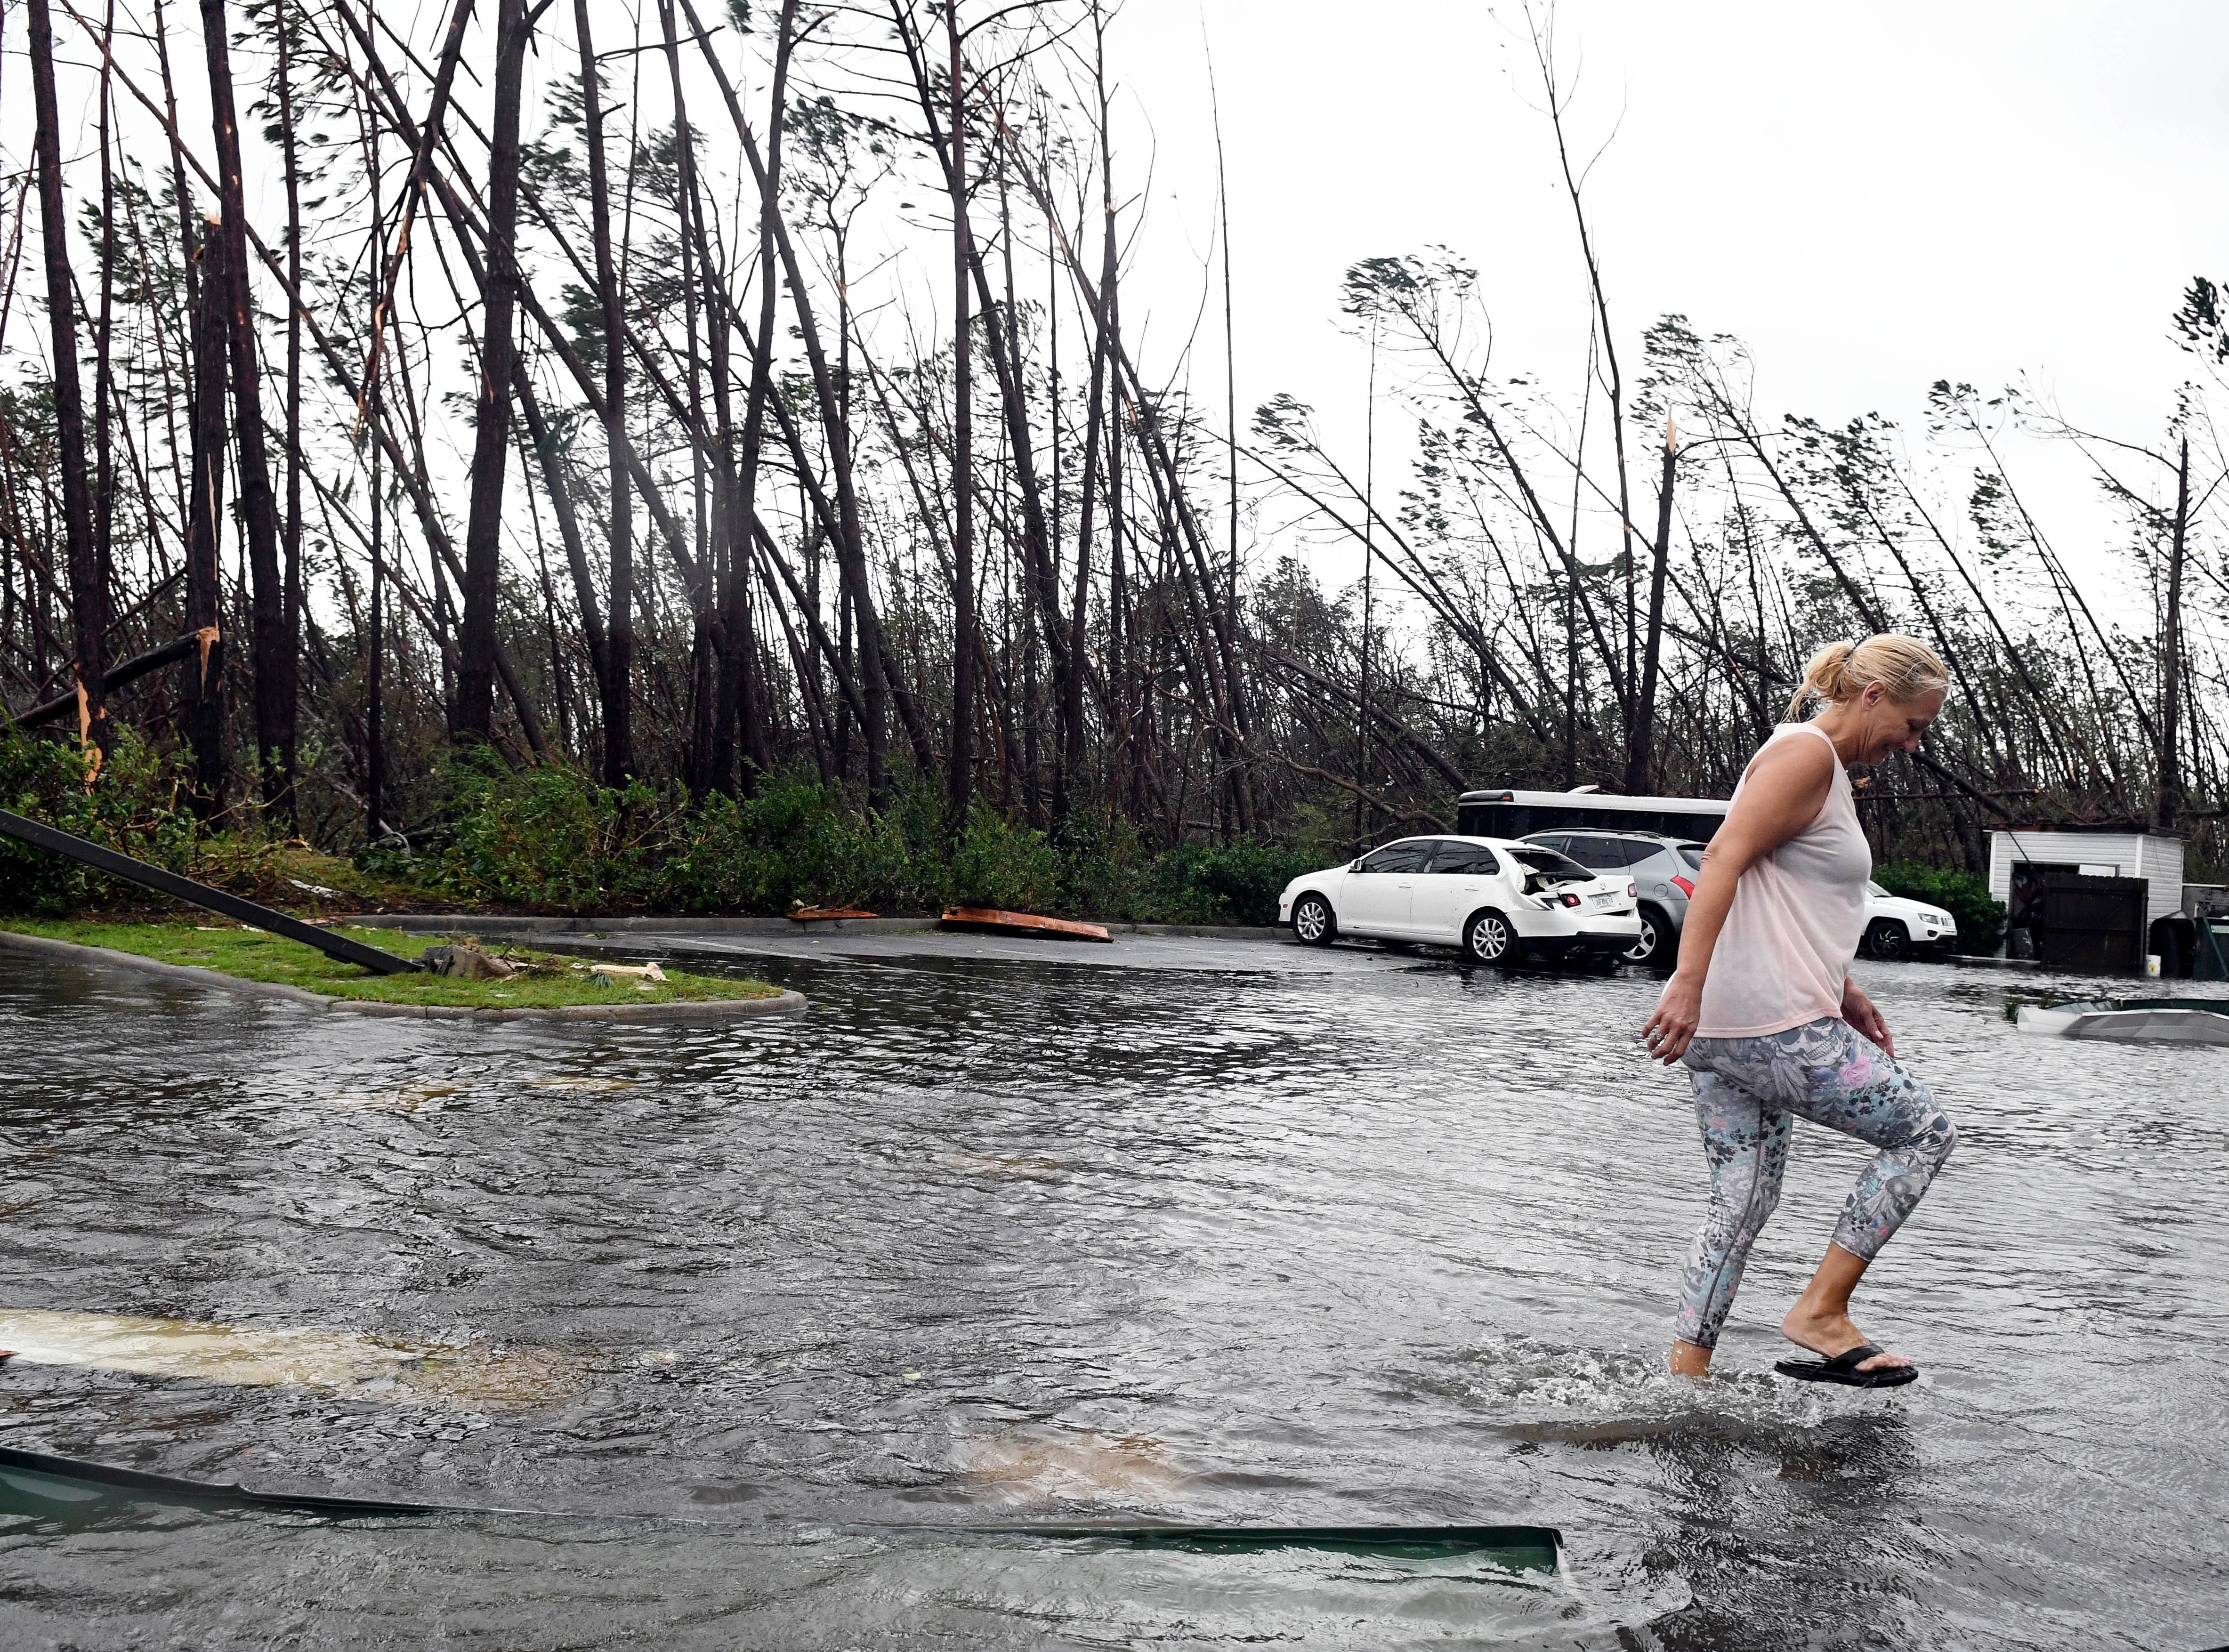 A woman walks through a flooded hotel parking lot in Panama City, FL Wednesday after Hurricane Michael. Mandatory Credit: Craig Bailey/FLORIDA TODAY via USA TODAY NETWORK